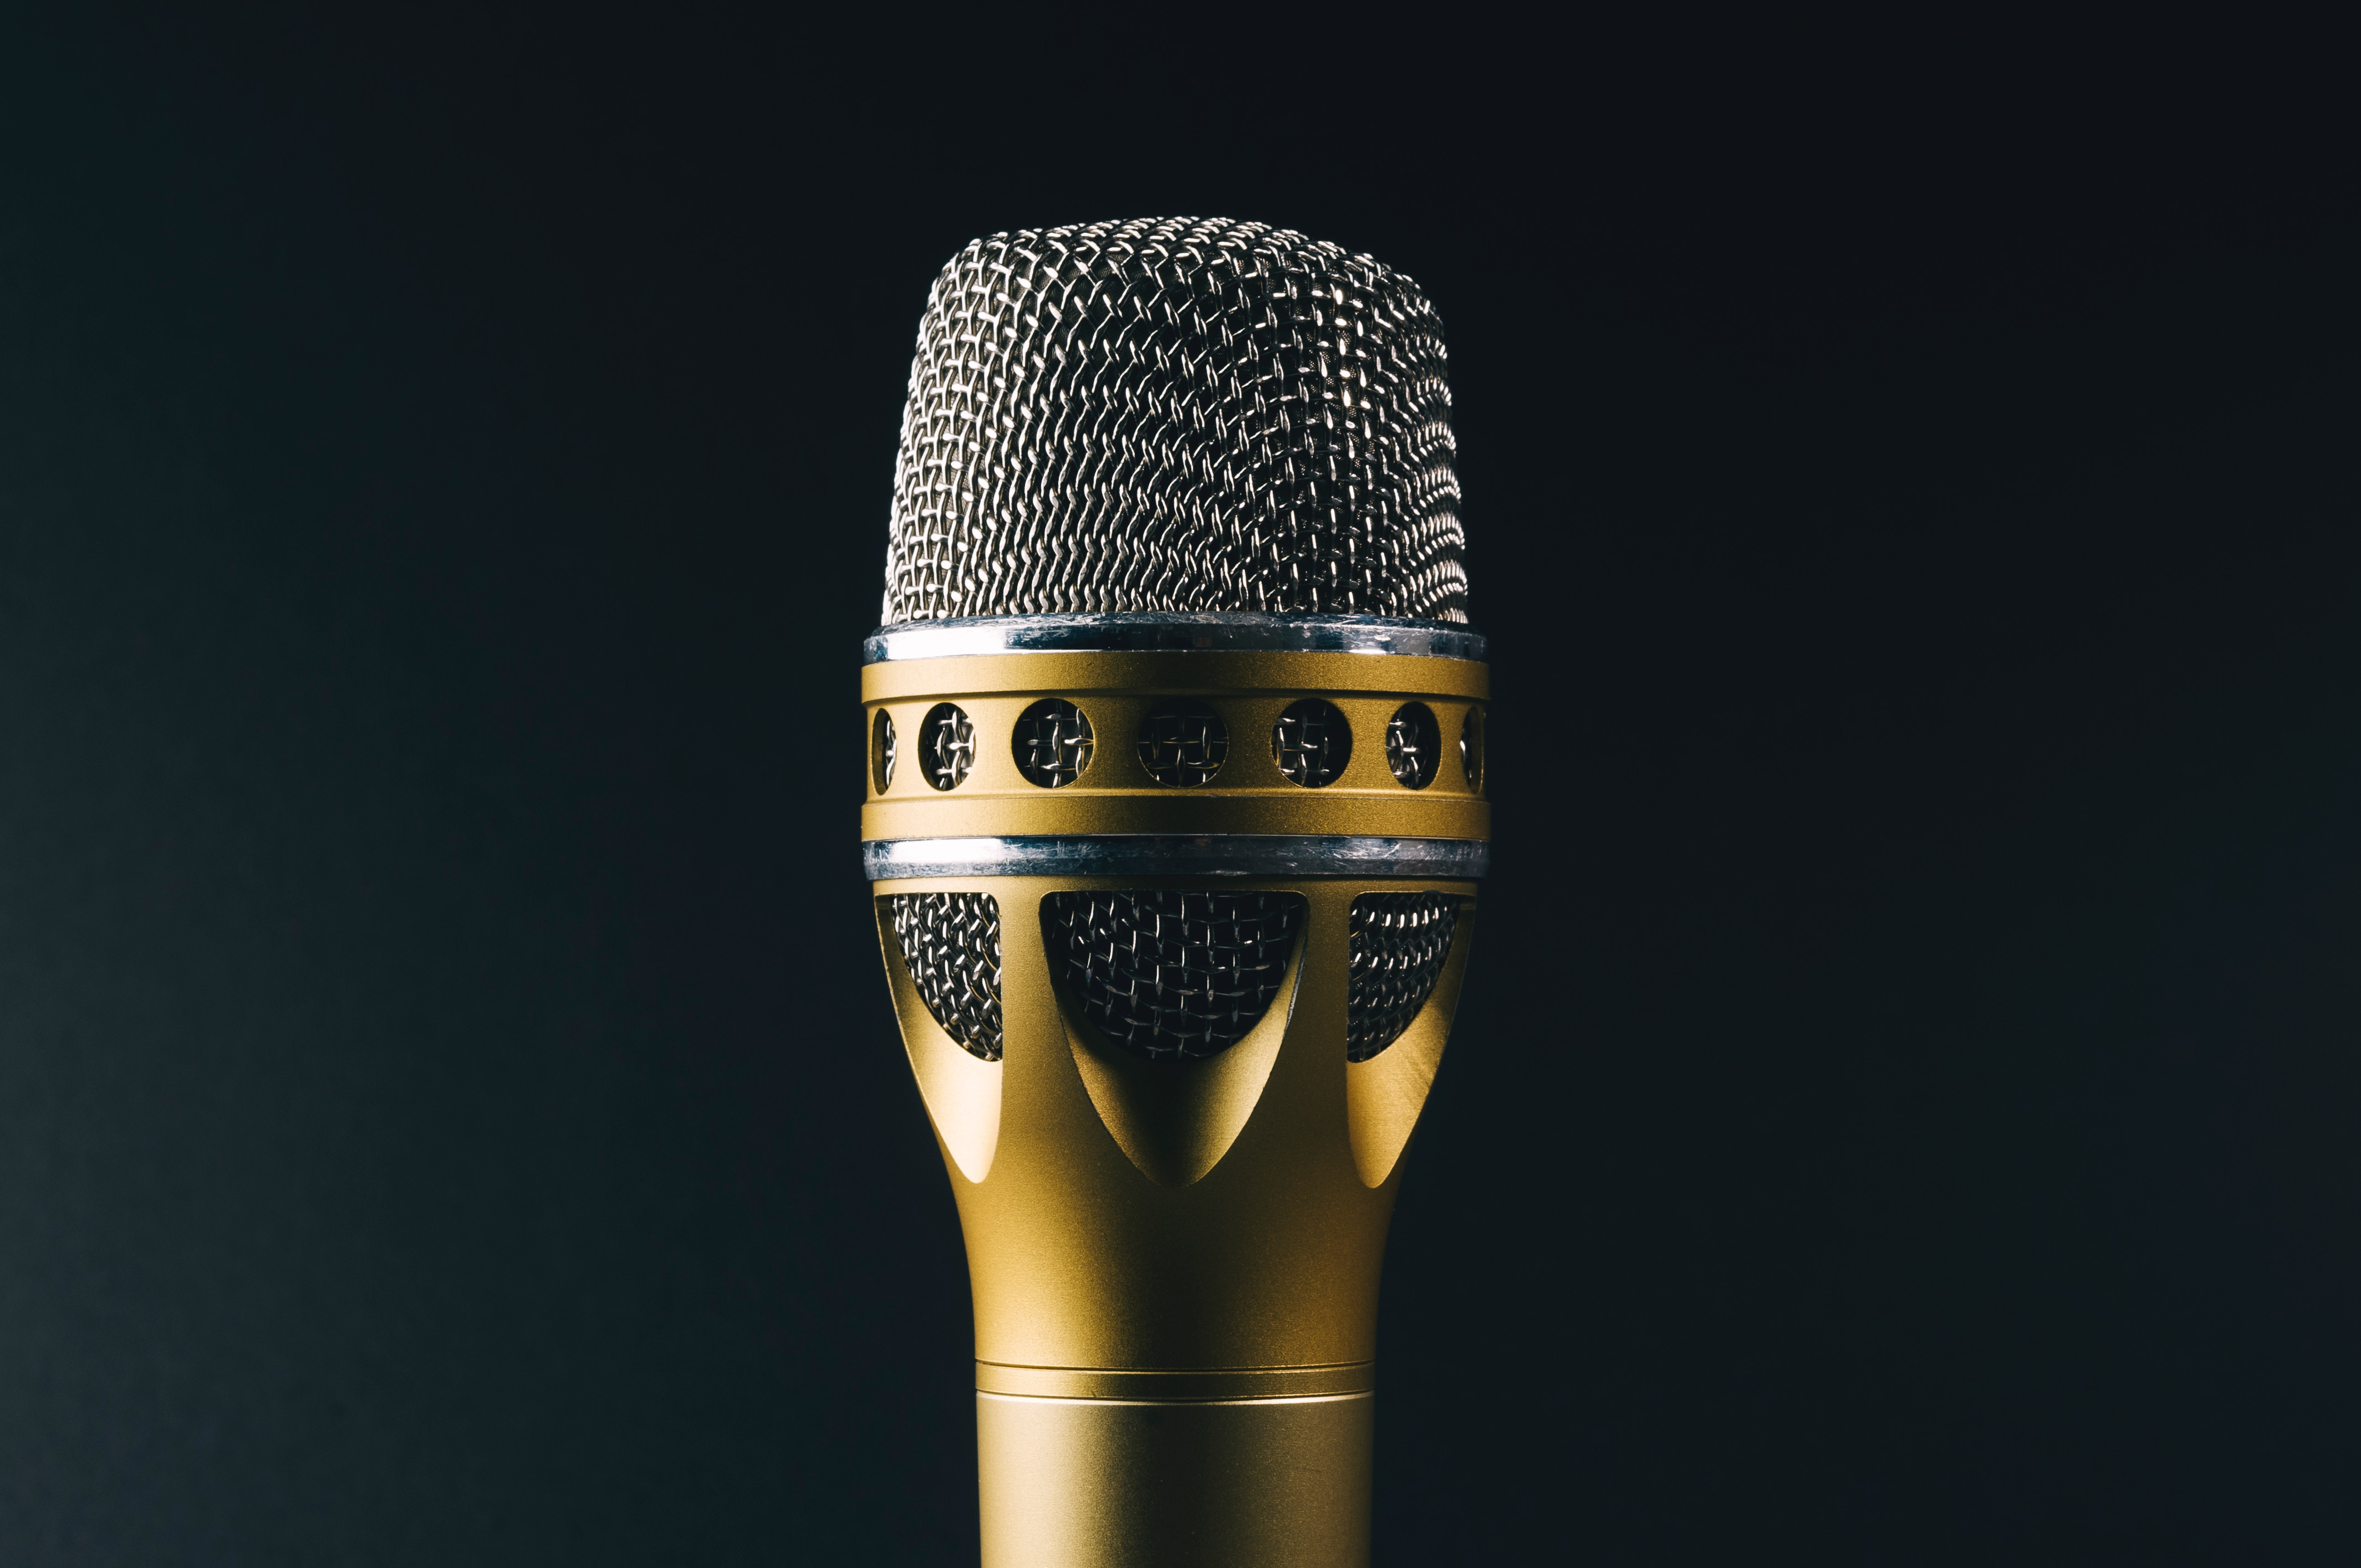 Social influencers: like owning a golden microphone